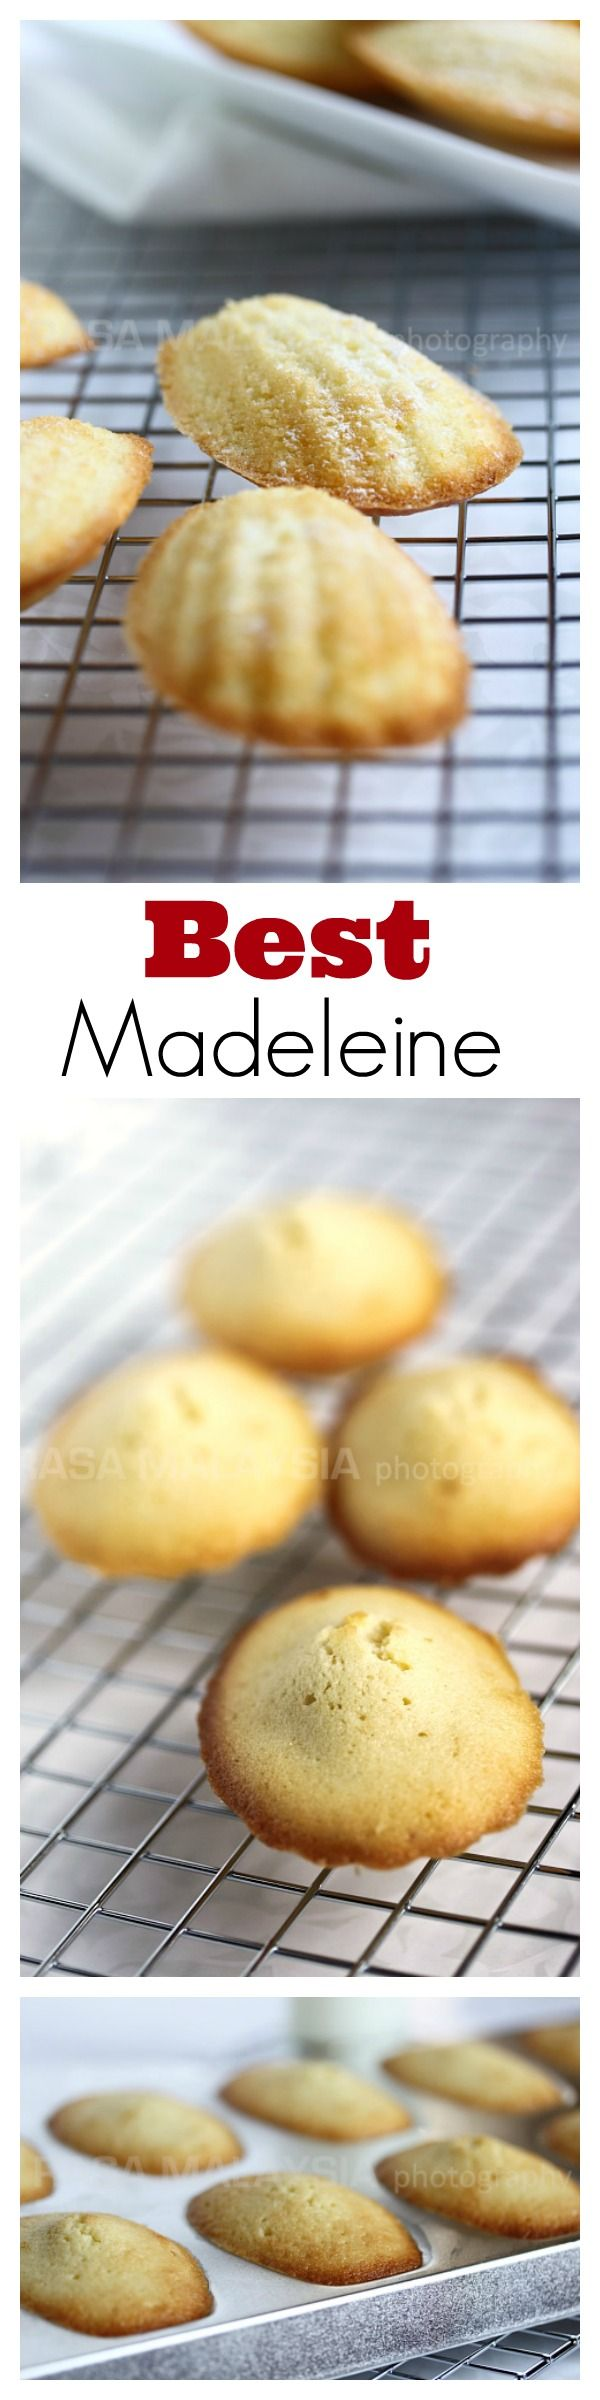 Madeleine is a French cookie/cake made of butter eggs and flour. Easy recipe for the best madeleine that you can't stop eating.